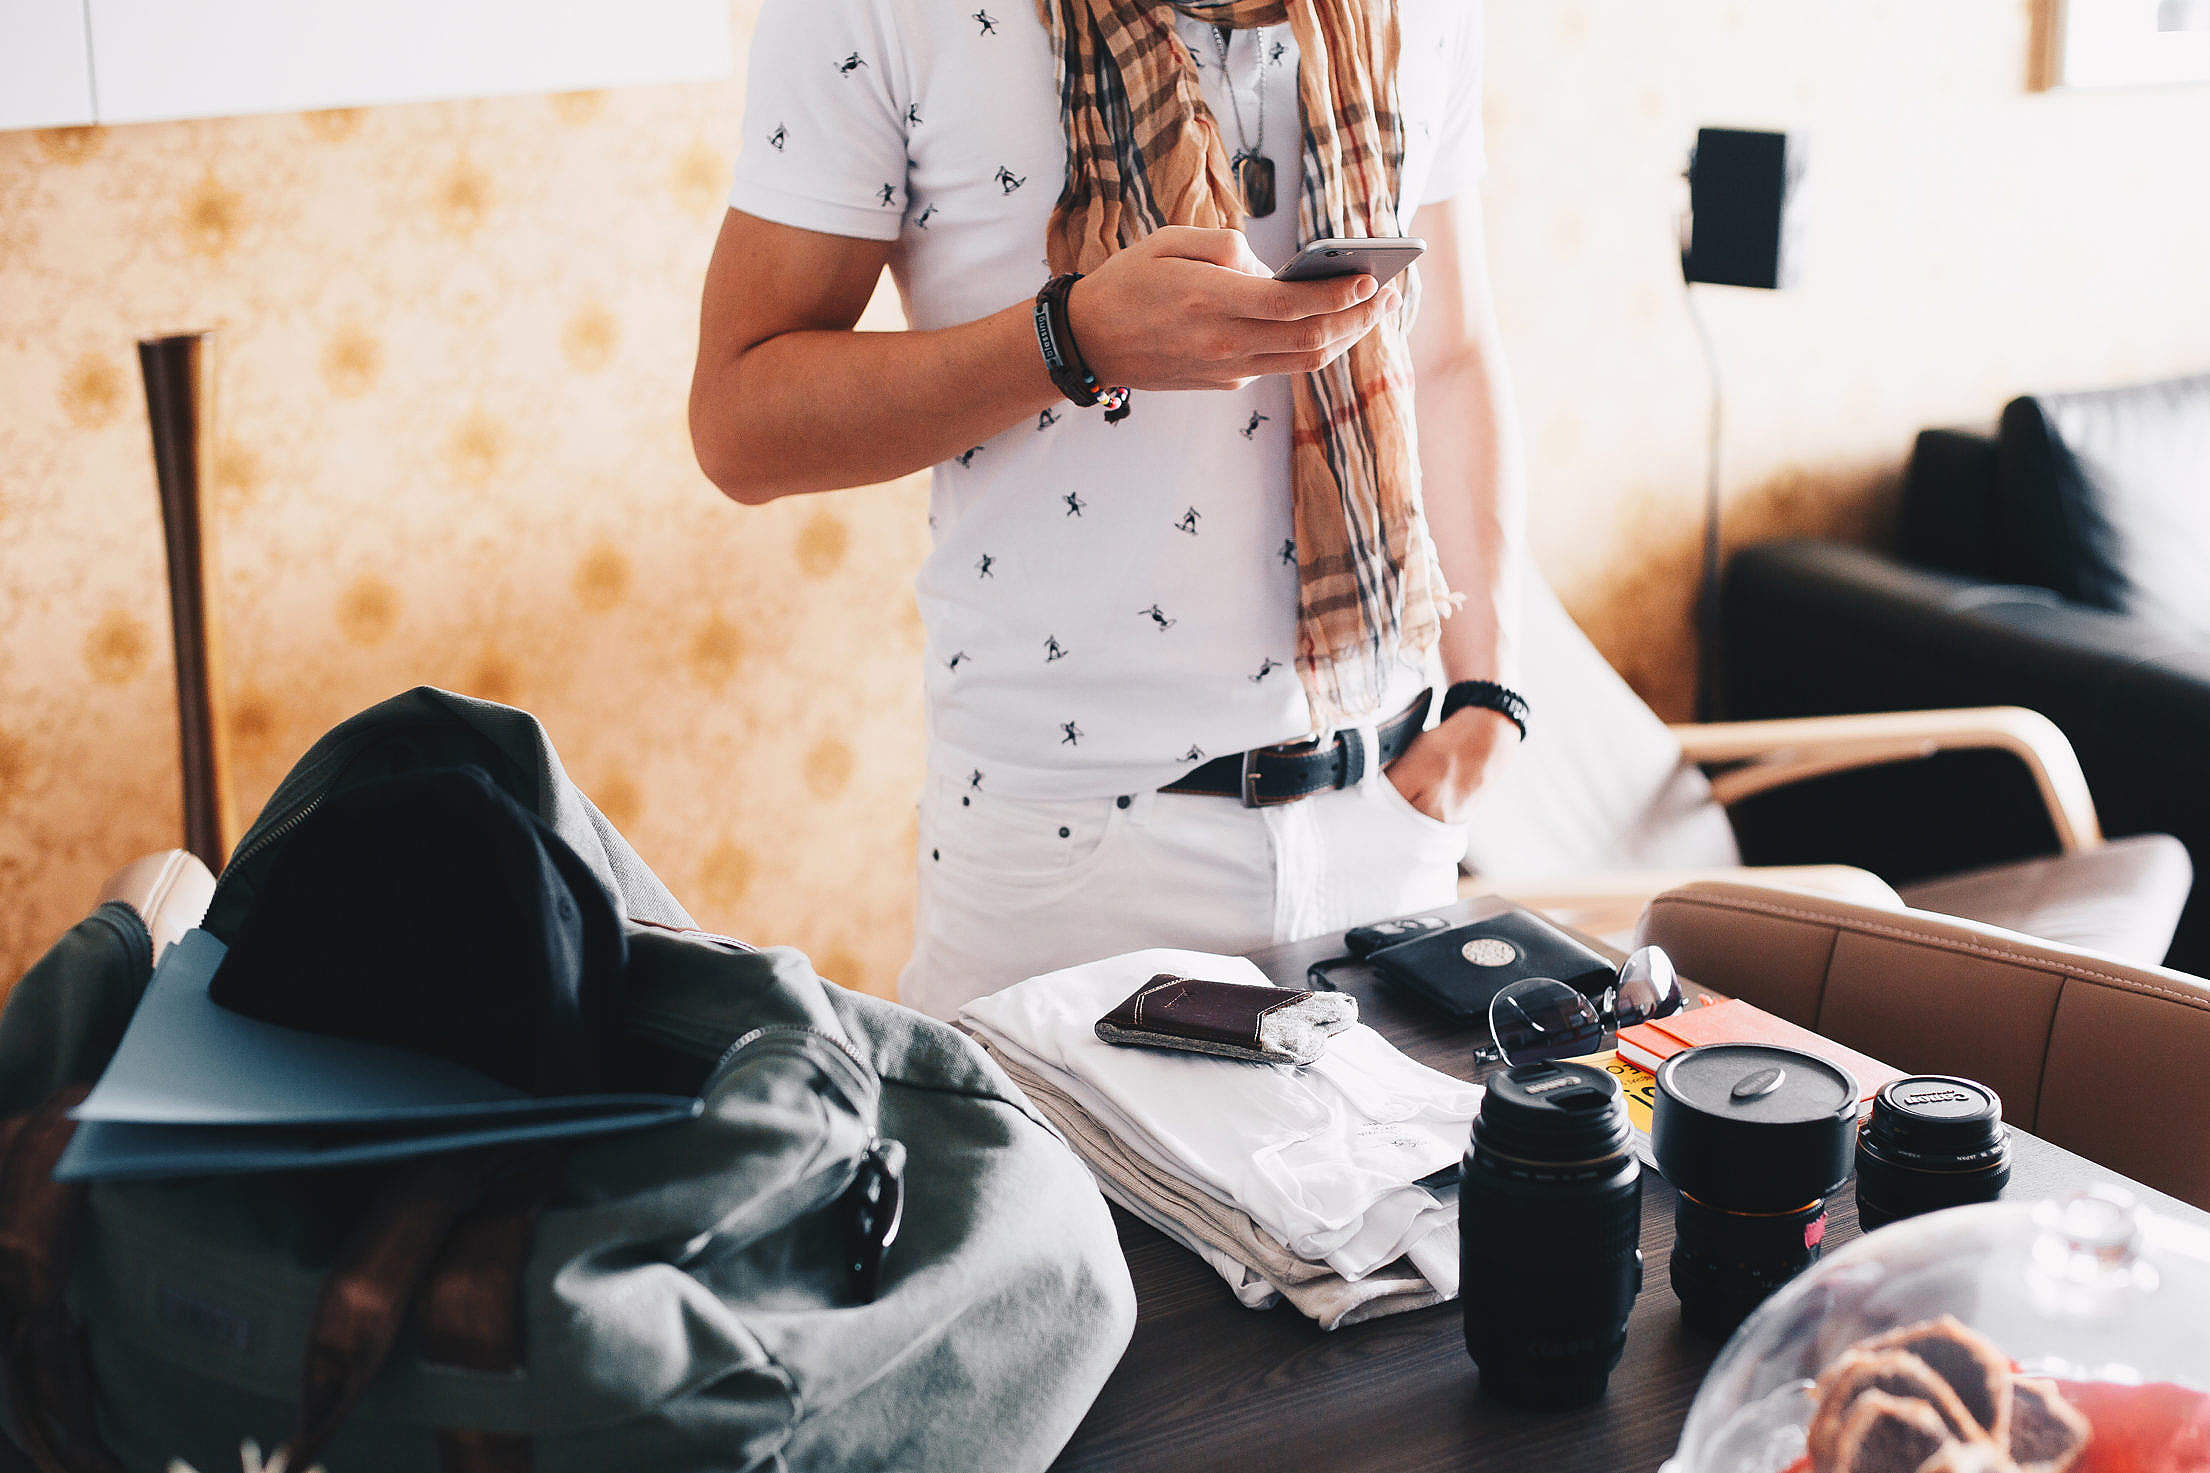 Man Checking His Phone while Packing for a Trip Free Stock Photo